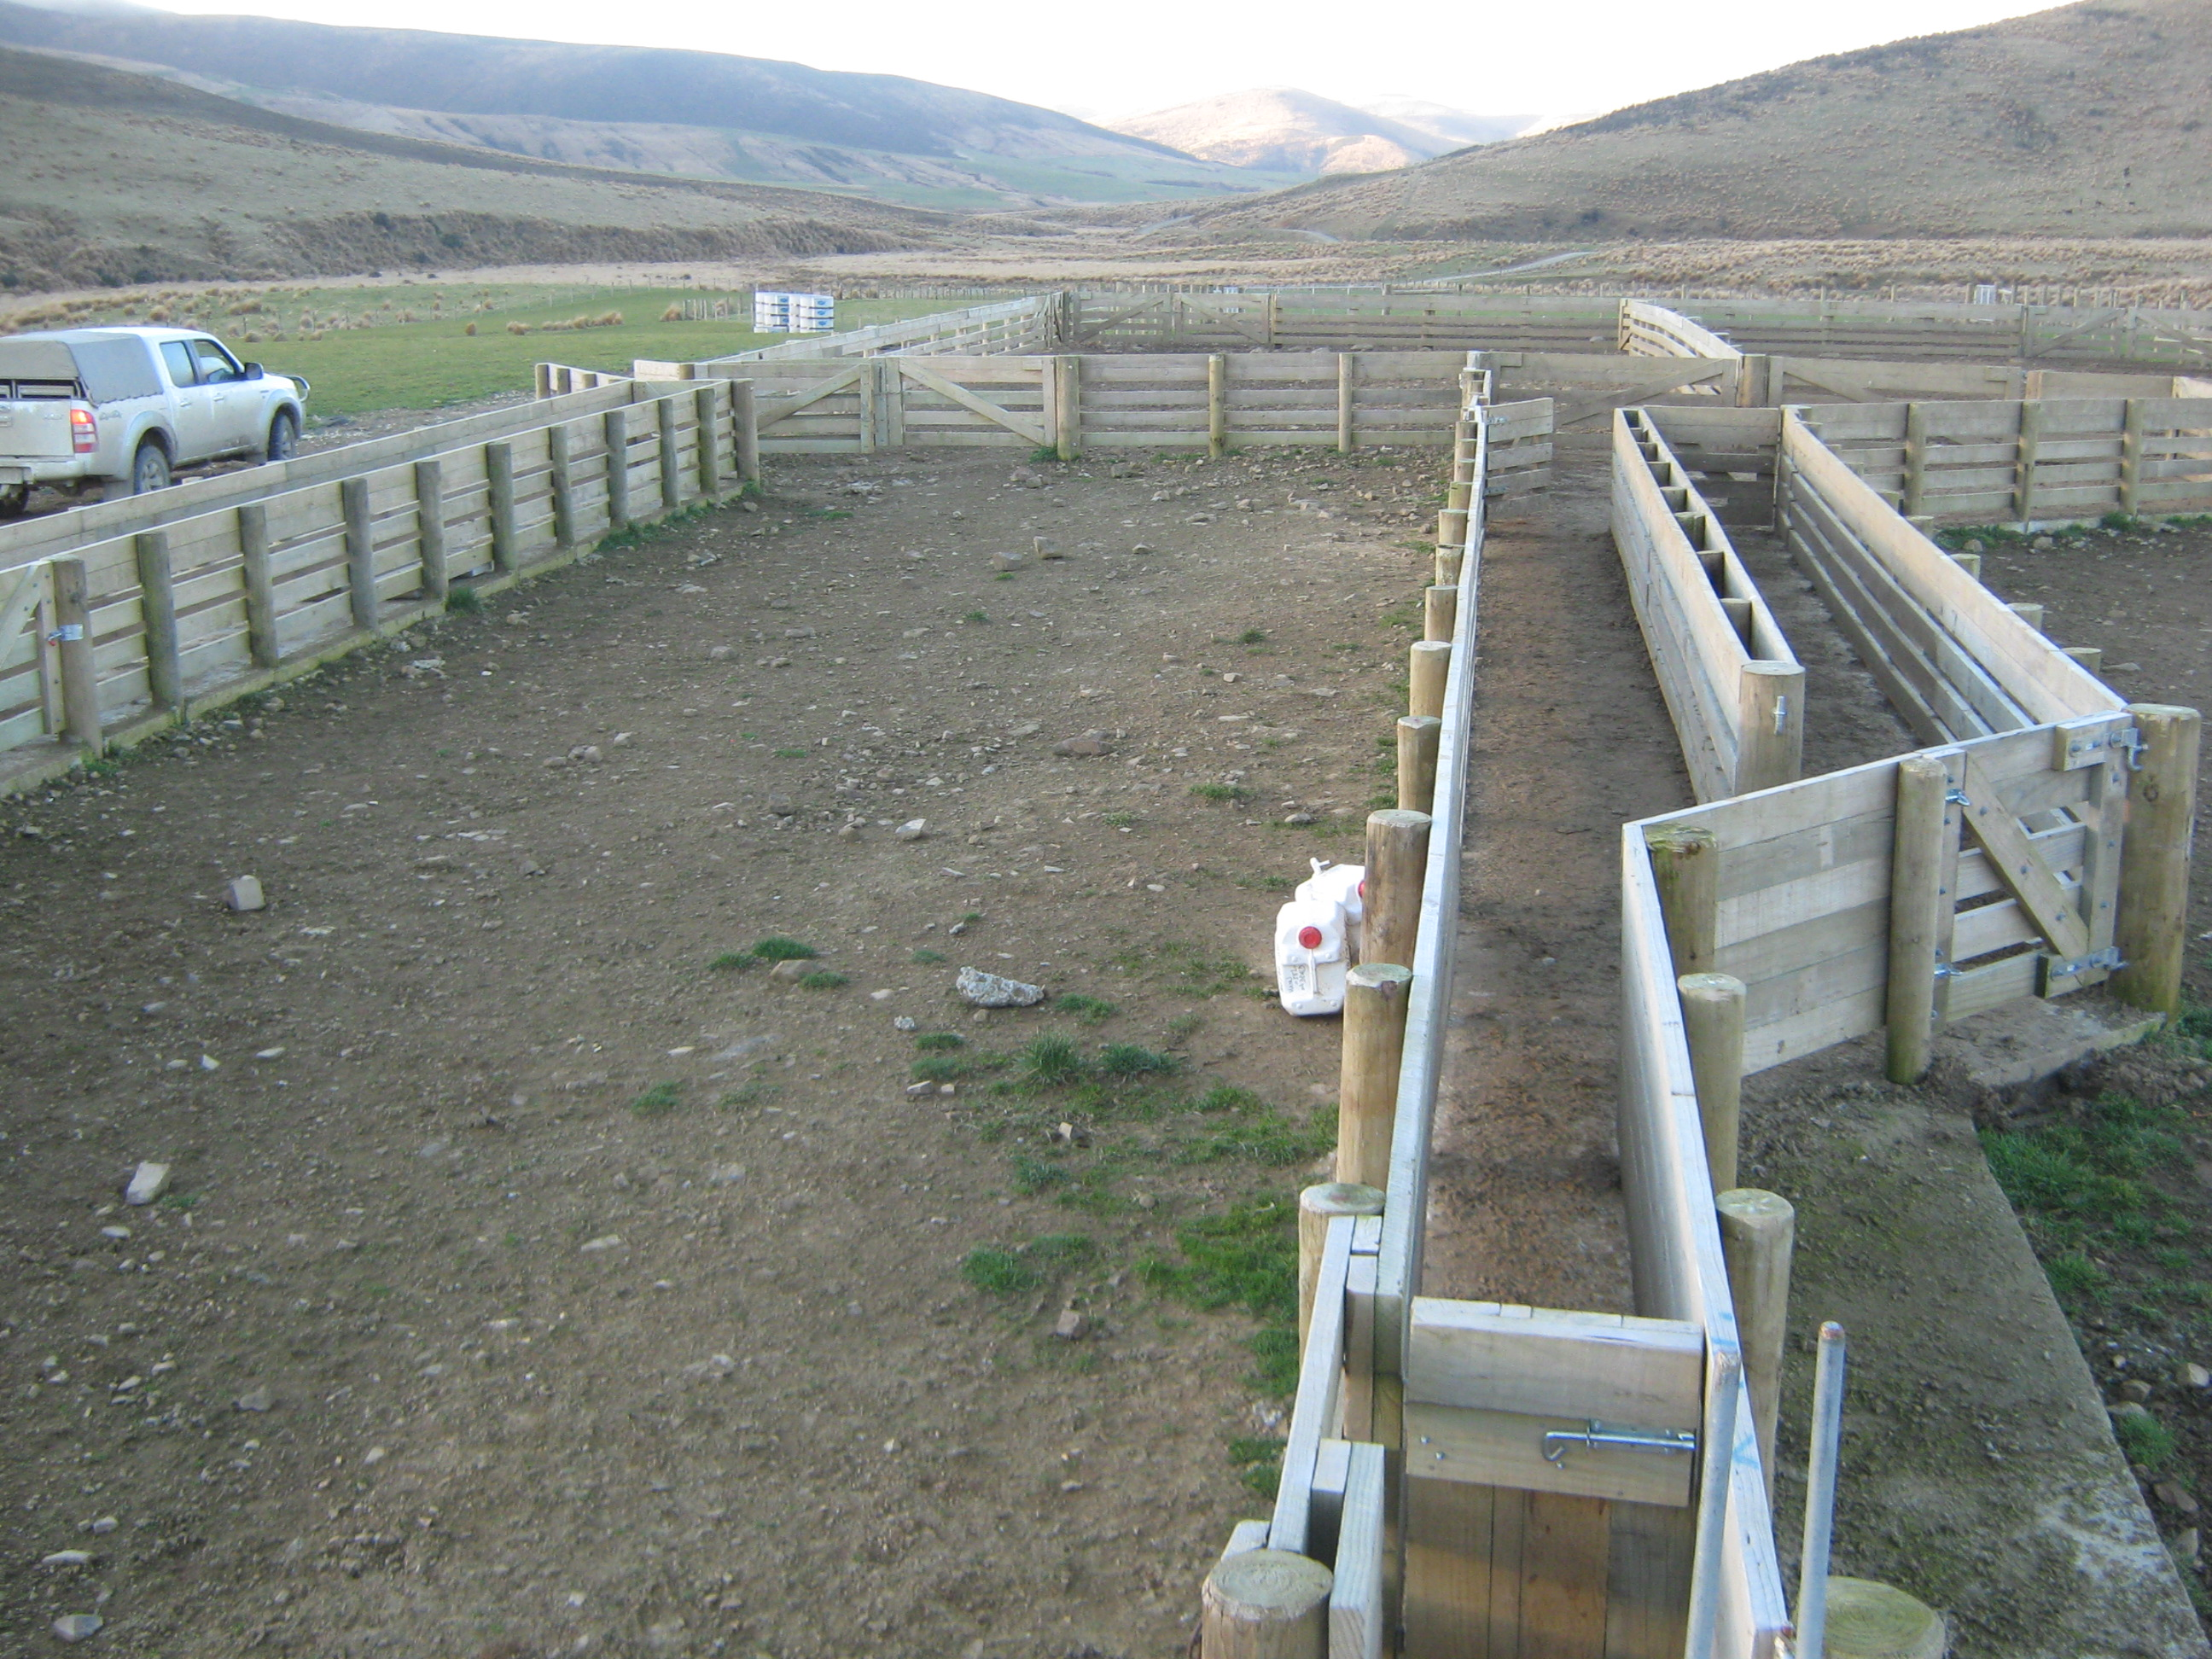 Yards Gallery Farm Sheds Buildings Barns Cattle